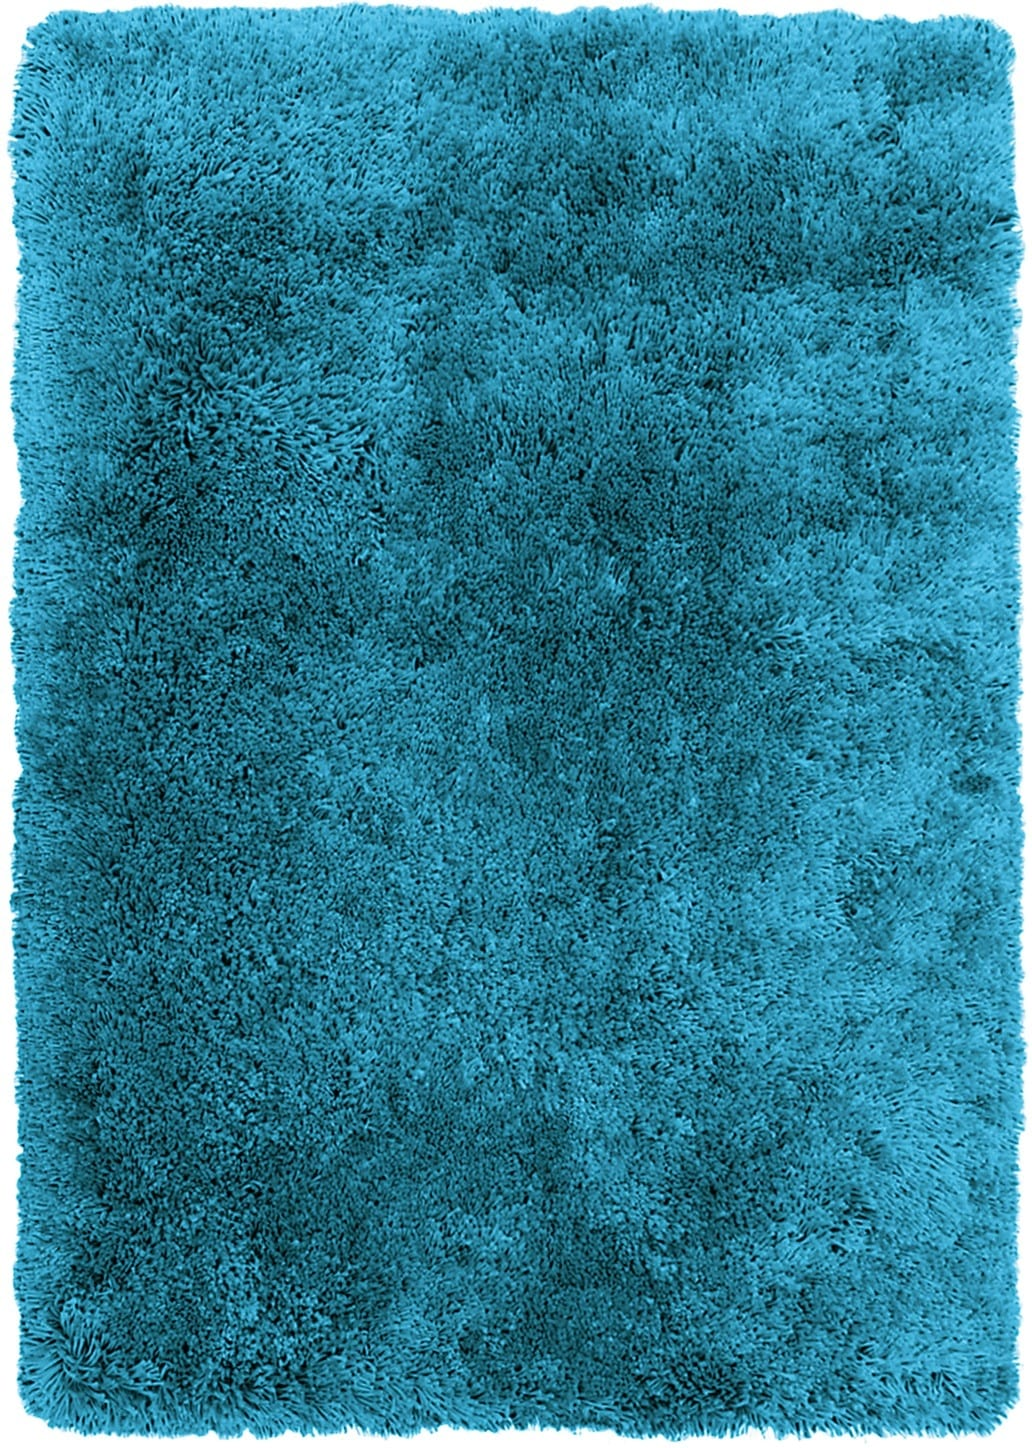 Rugs - Aqua Fashion Shag Area Rug – 4' x 5'